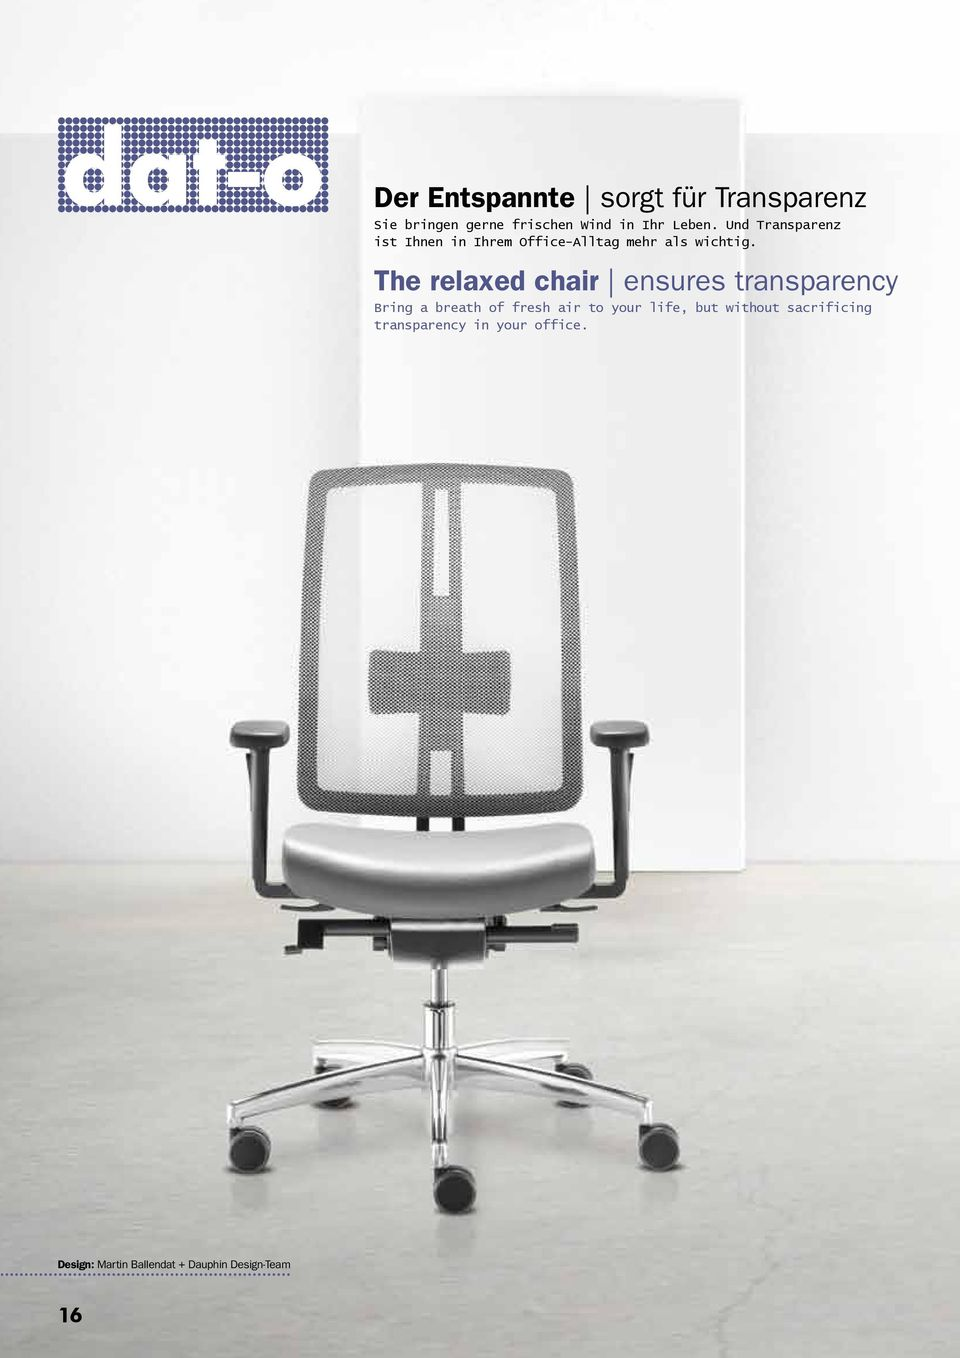 The relaxed chair ensures transparency Bring a breath of fresh air to your life, but